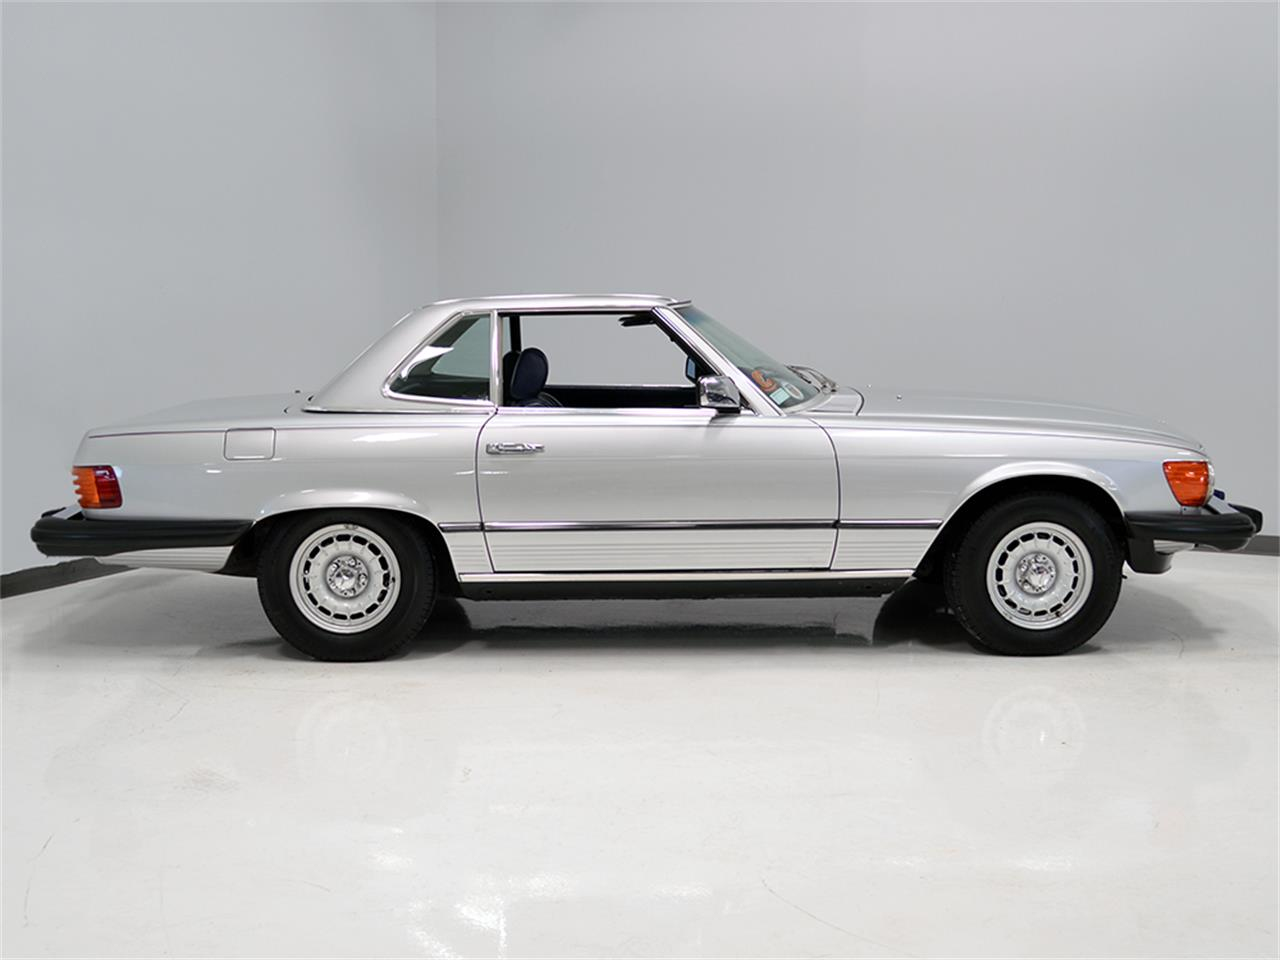 Large Picture of '84 380SL located in Macedonia Ohio Offered by Harwood Motors, LTD. - KA2F